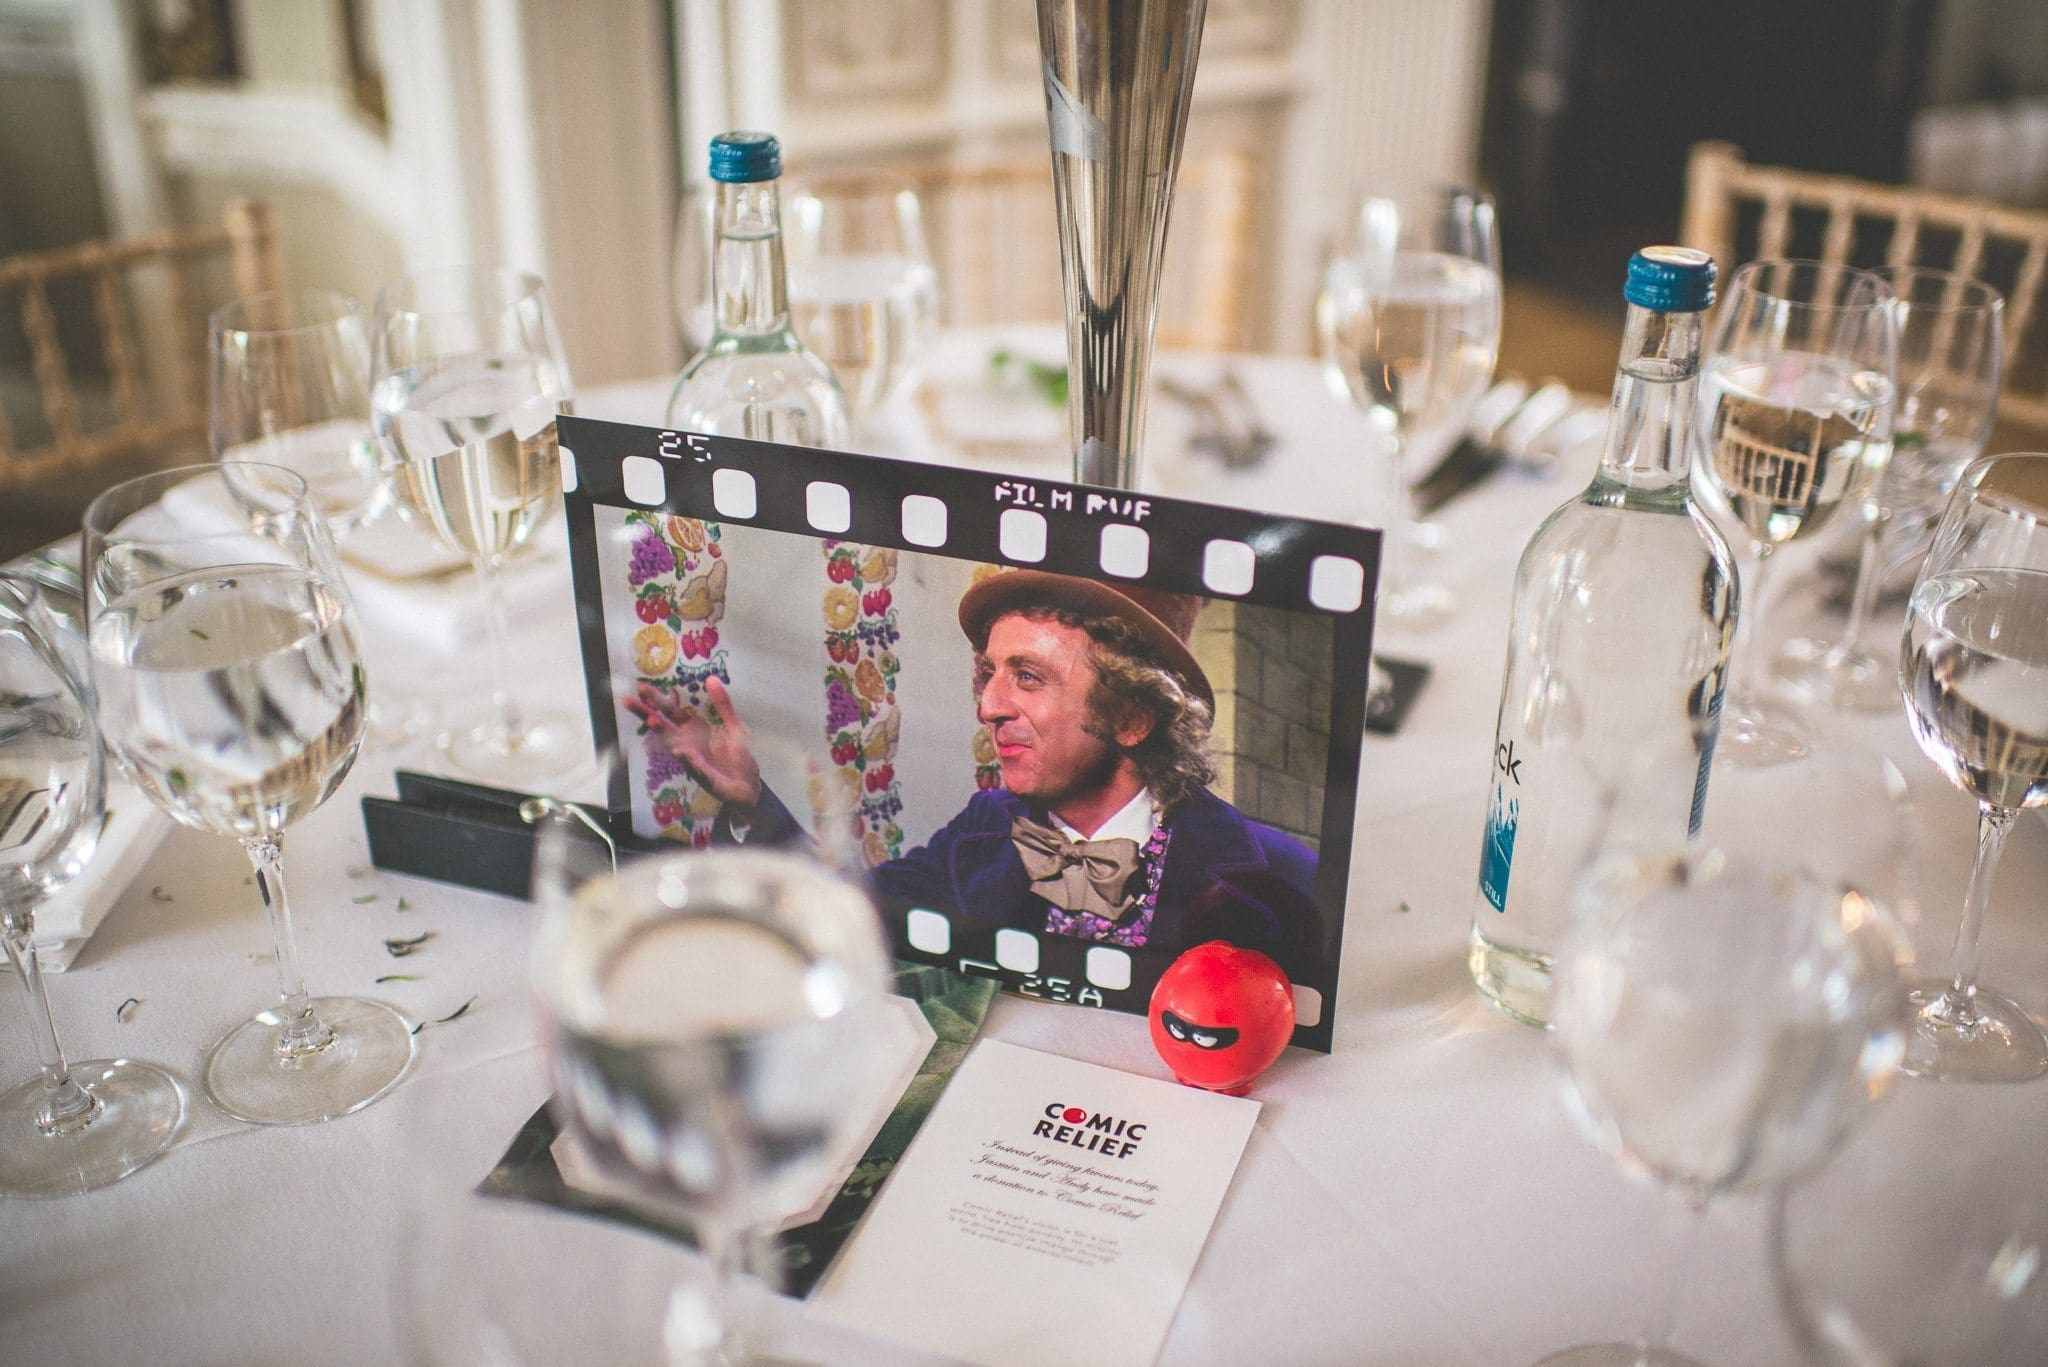 A close up of one of the film-themed table centres - showing Gene Wilder as Willy Wonka - and a note explaining that the couple have donated to Comic Relief in lieu of giving favours